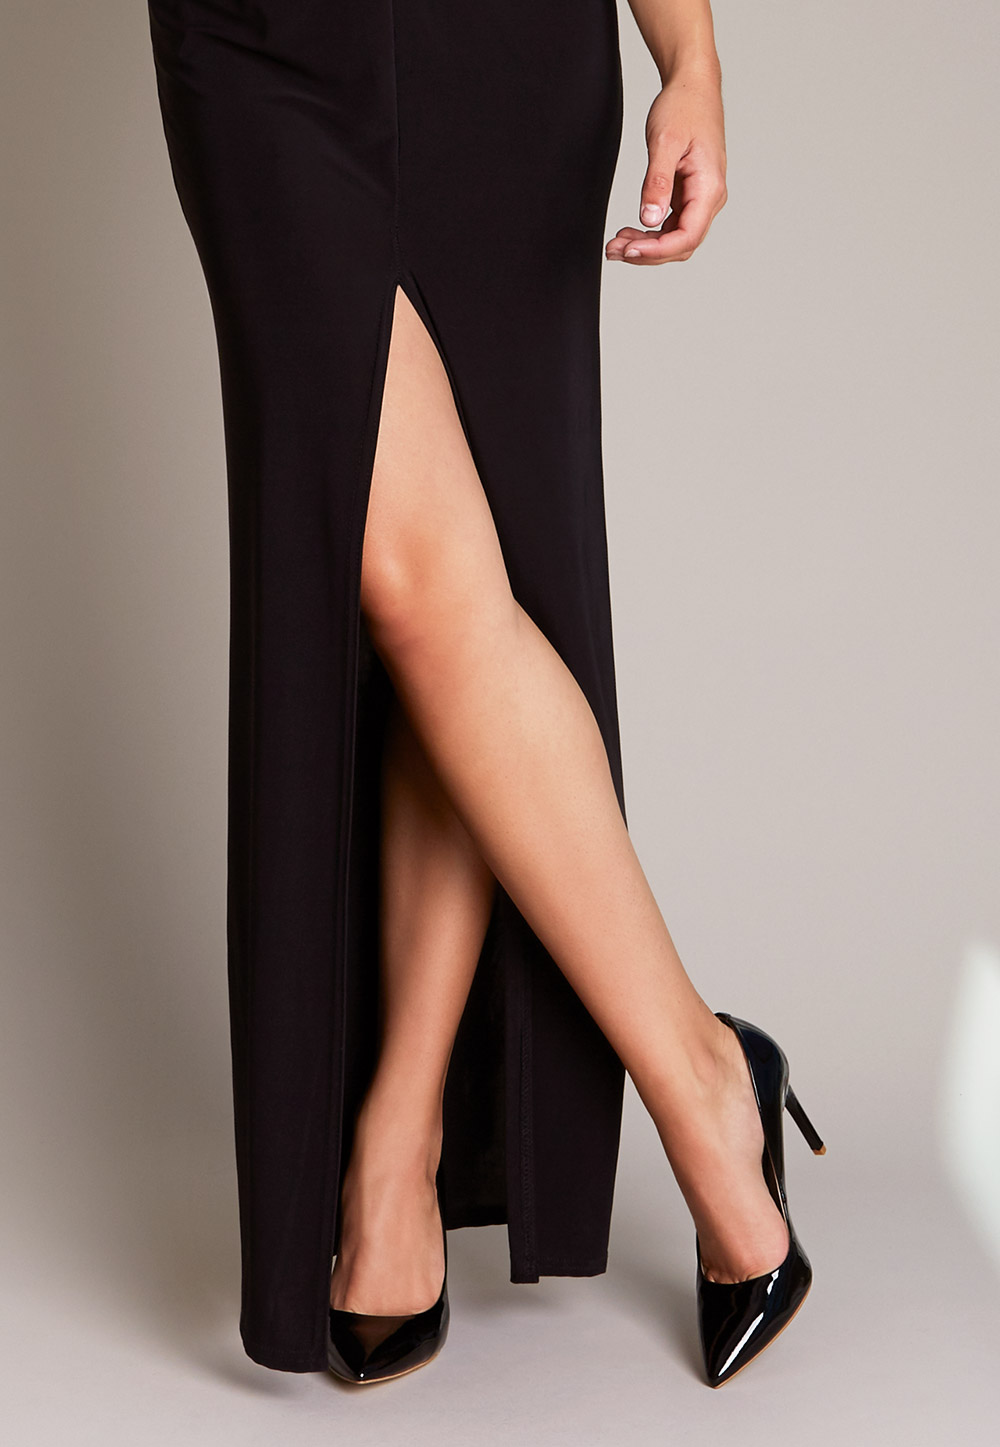 How To Stretch Black Leather Pumps